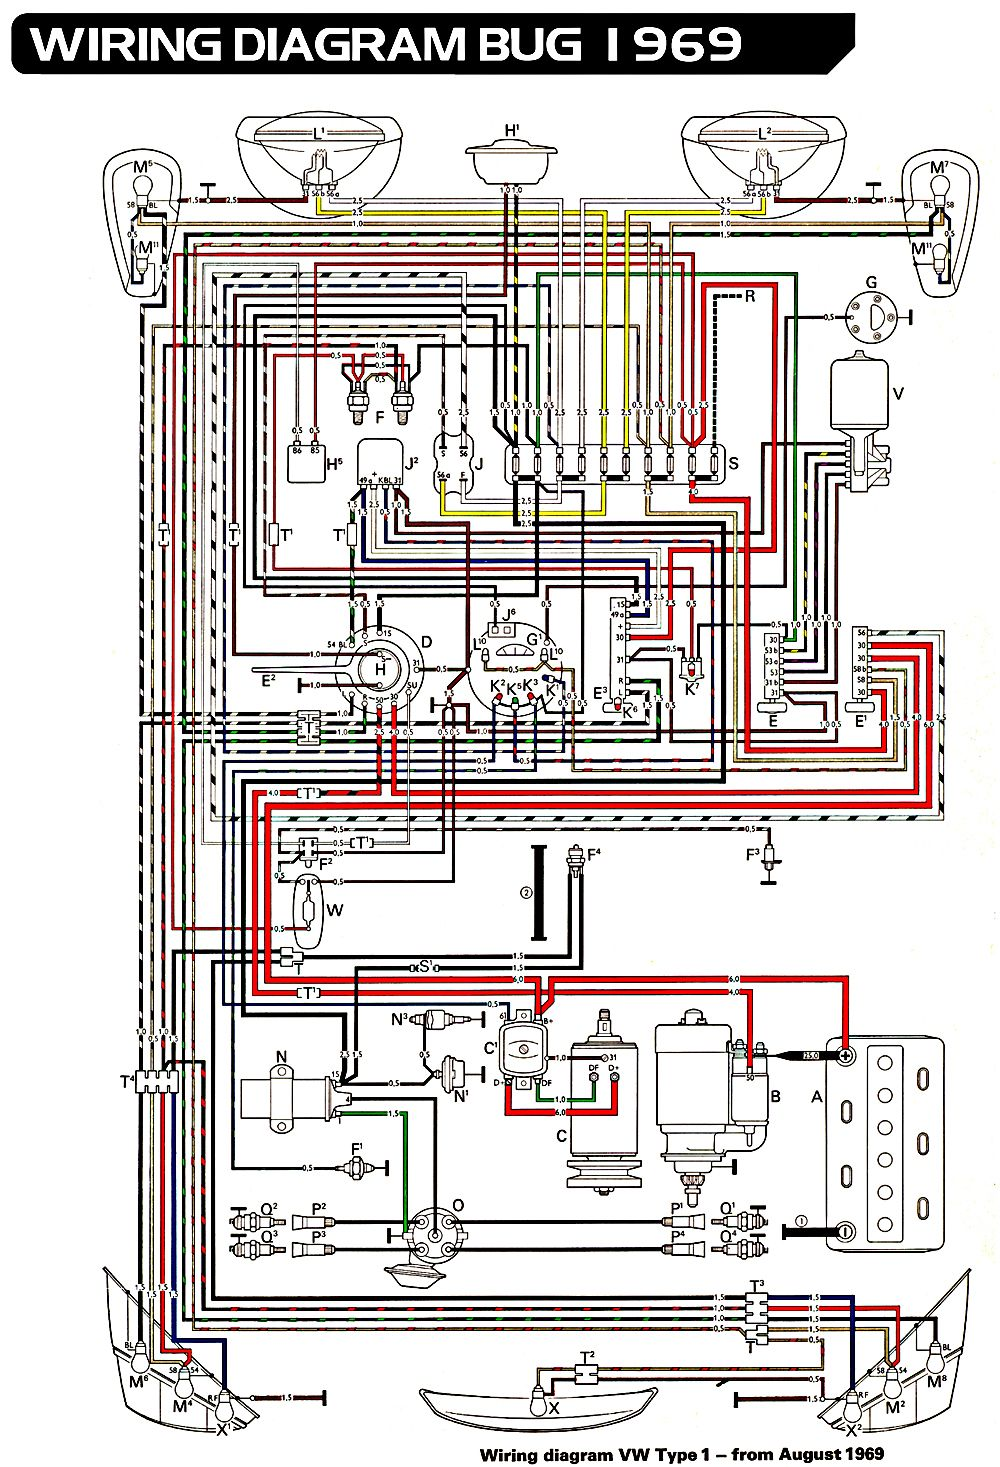 6d75c15875479254f26a32a8499d9044 vw type 1 wiring diagram 1961 vw type 1 wiring diagram \u2022 wiring 1969 vw squareback wiring diagram at webbmarketing.co